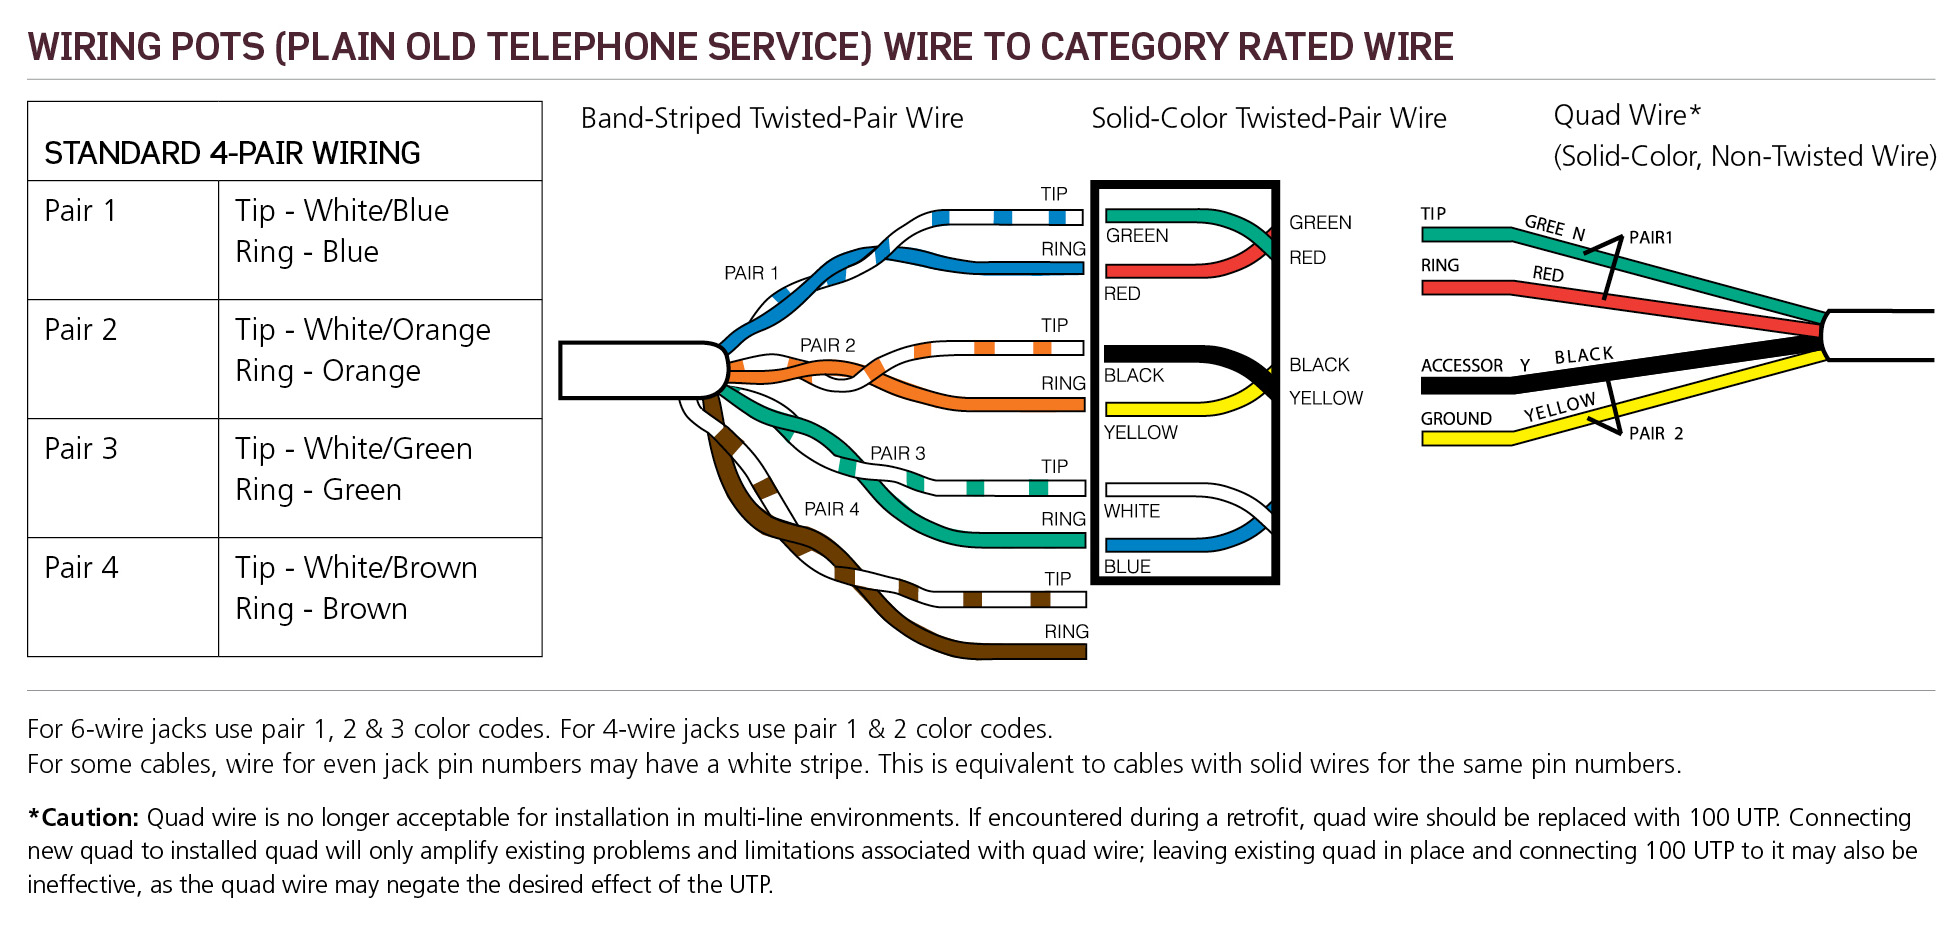 medium resolution of cat 3 wiring for phone diagram simple wiring schema cat 5 wiring code cat 3 wiring color code